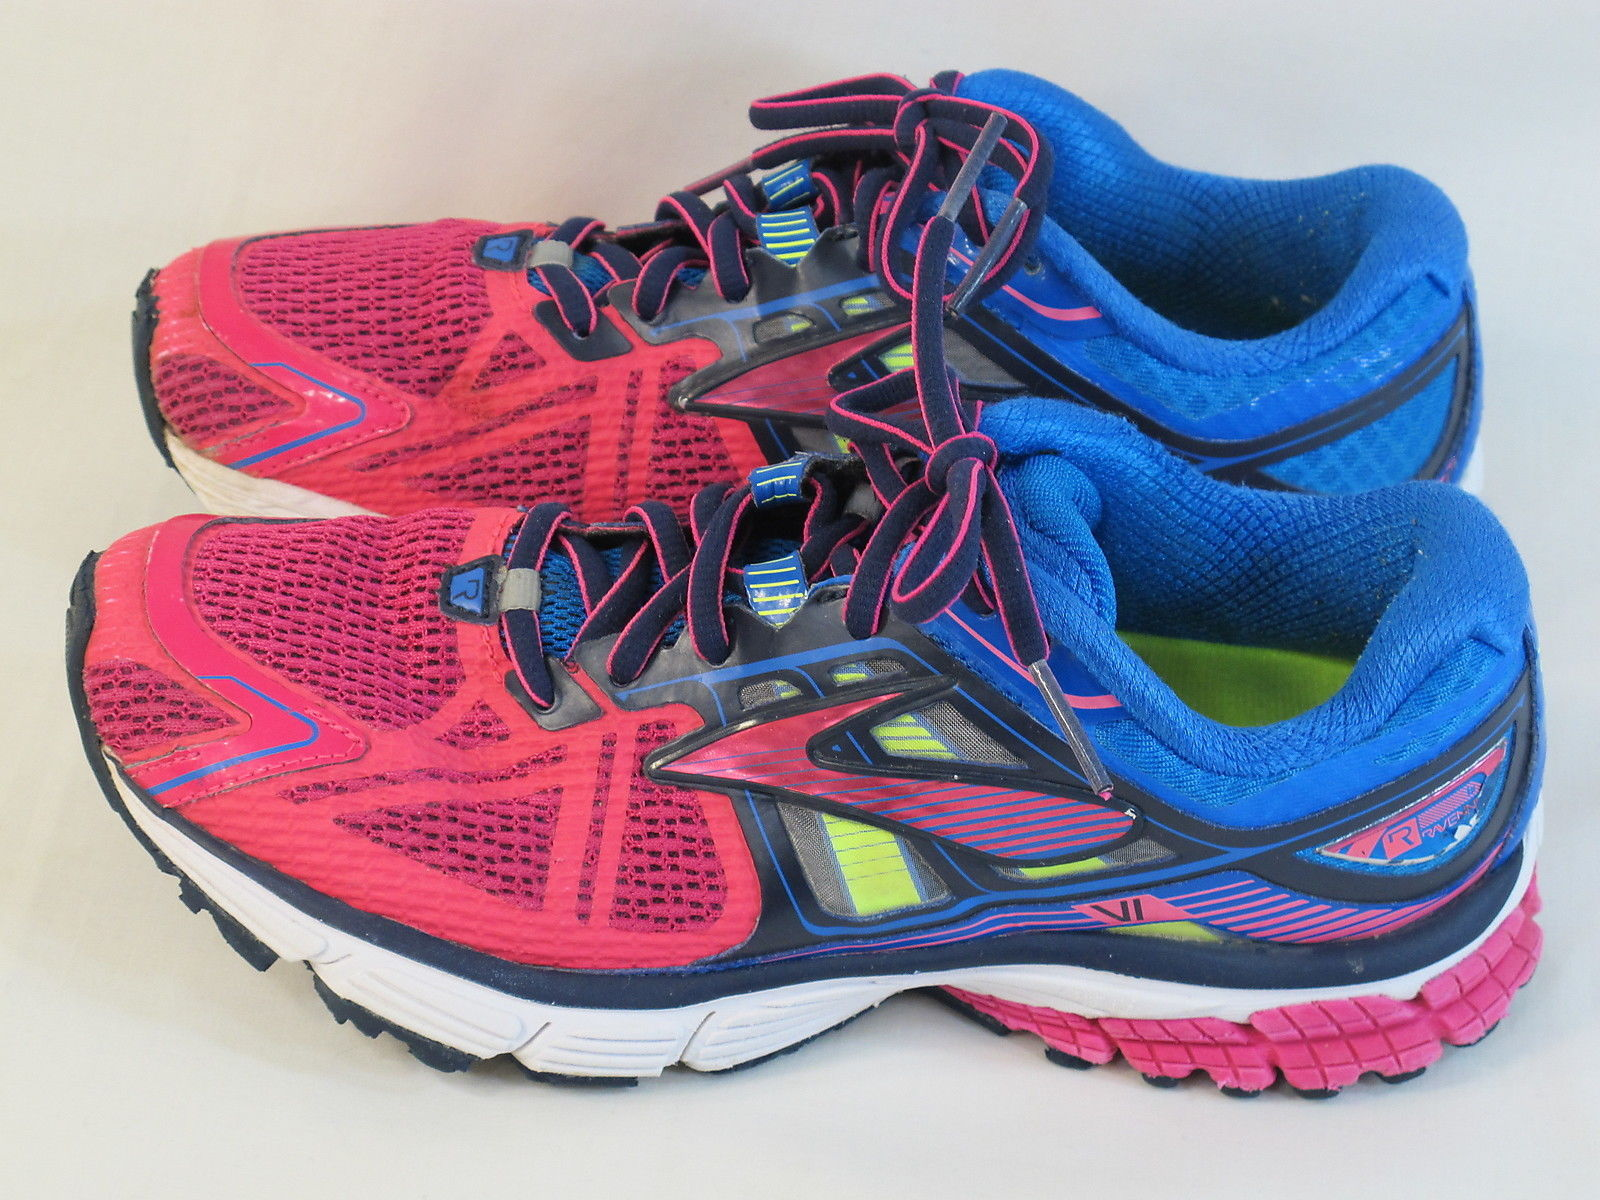 b712c46f23a0 Brooks Ravenna 6 Running Shoes Women s Size 7.5 B US Excellent Plus  Condition